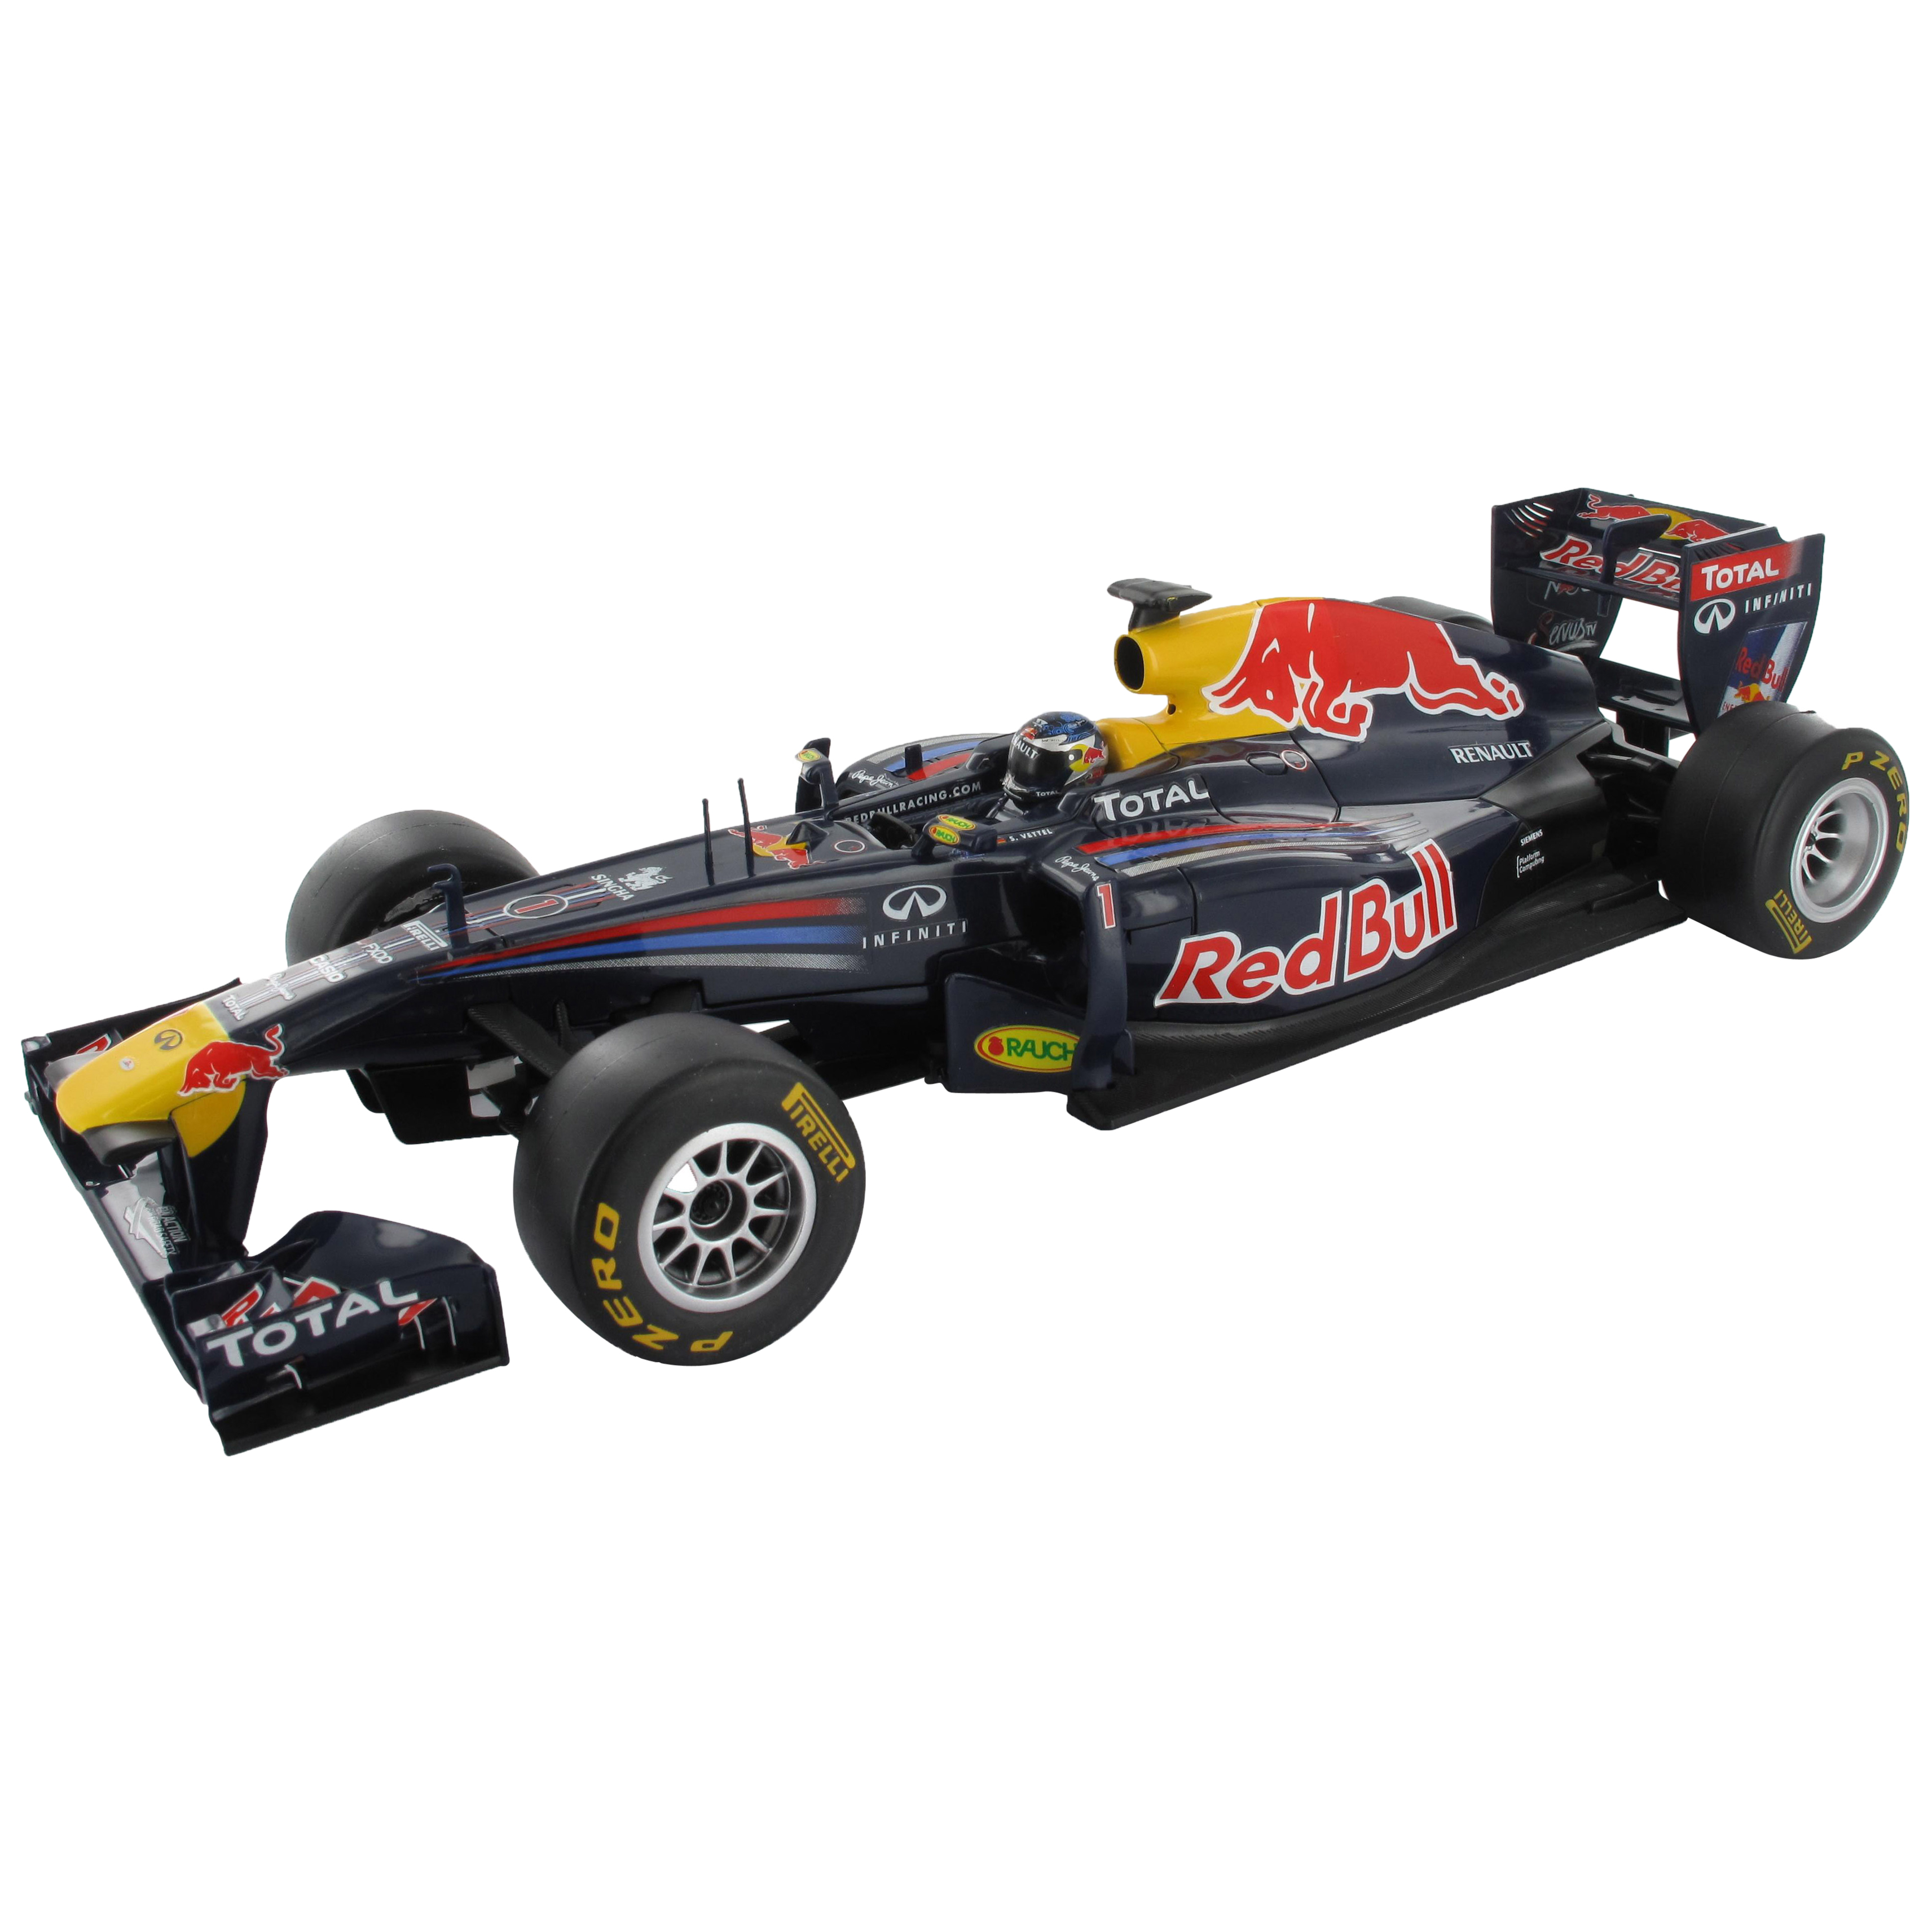 Red Bull Racing RB7 Sebastian Vettel 1:18 Scale Remote Control Car